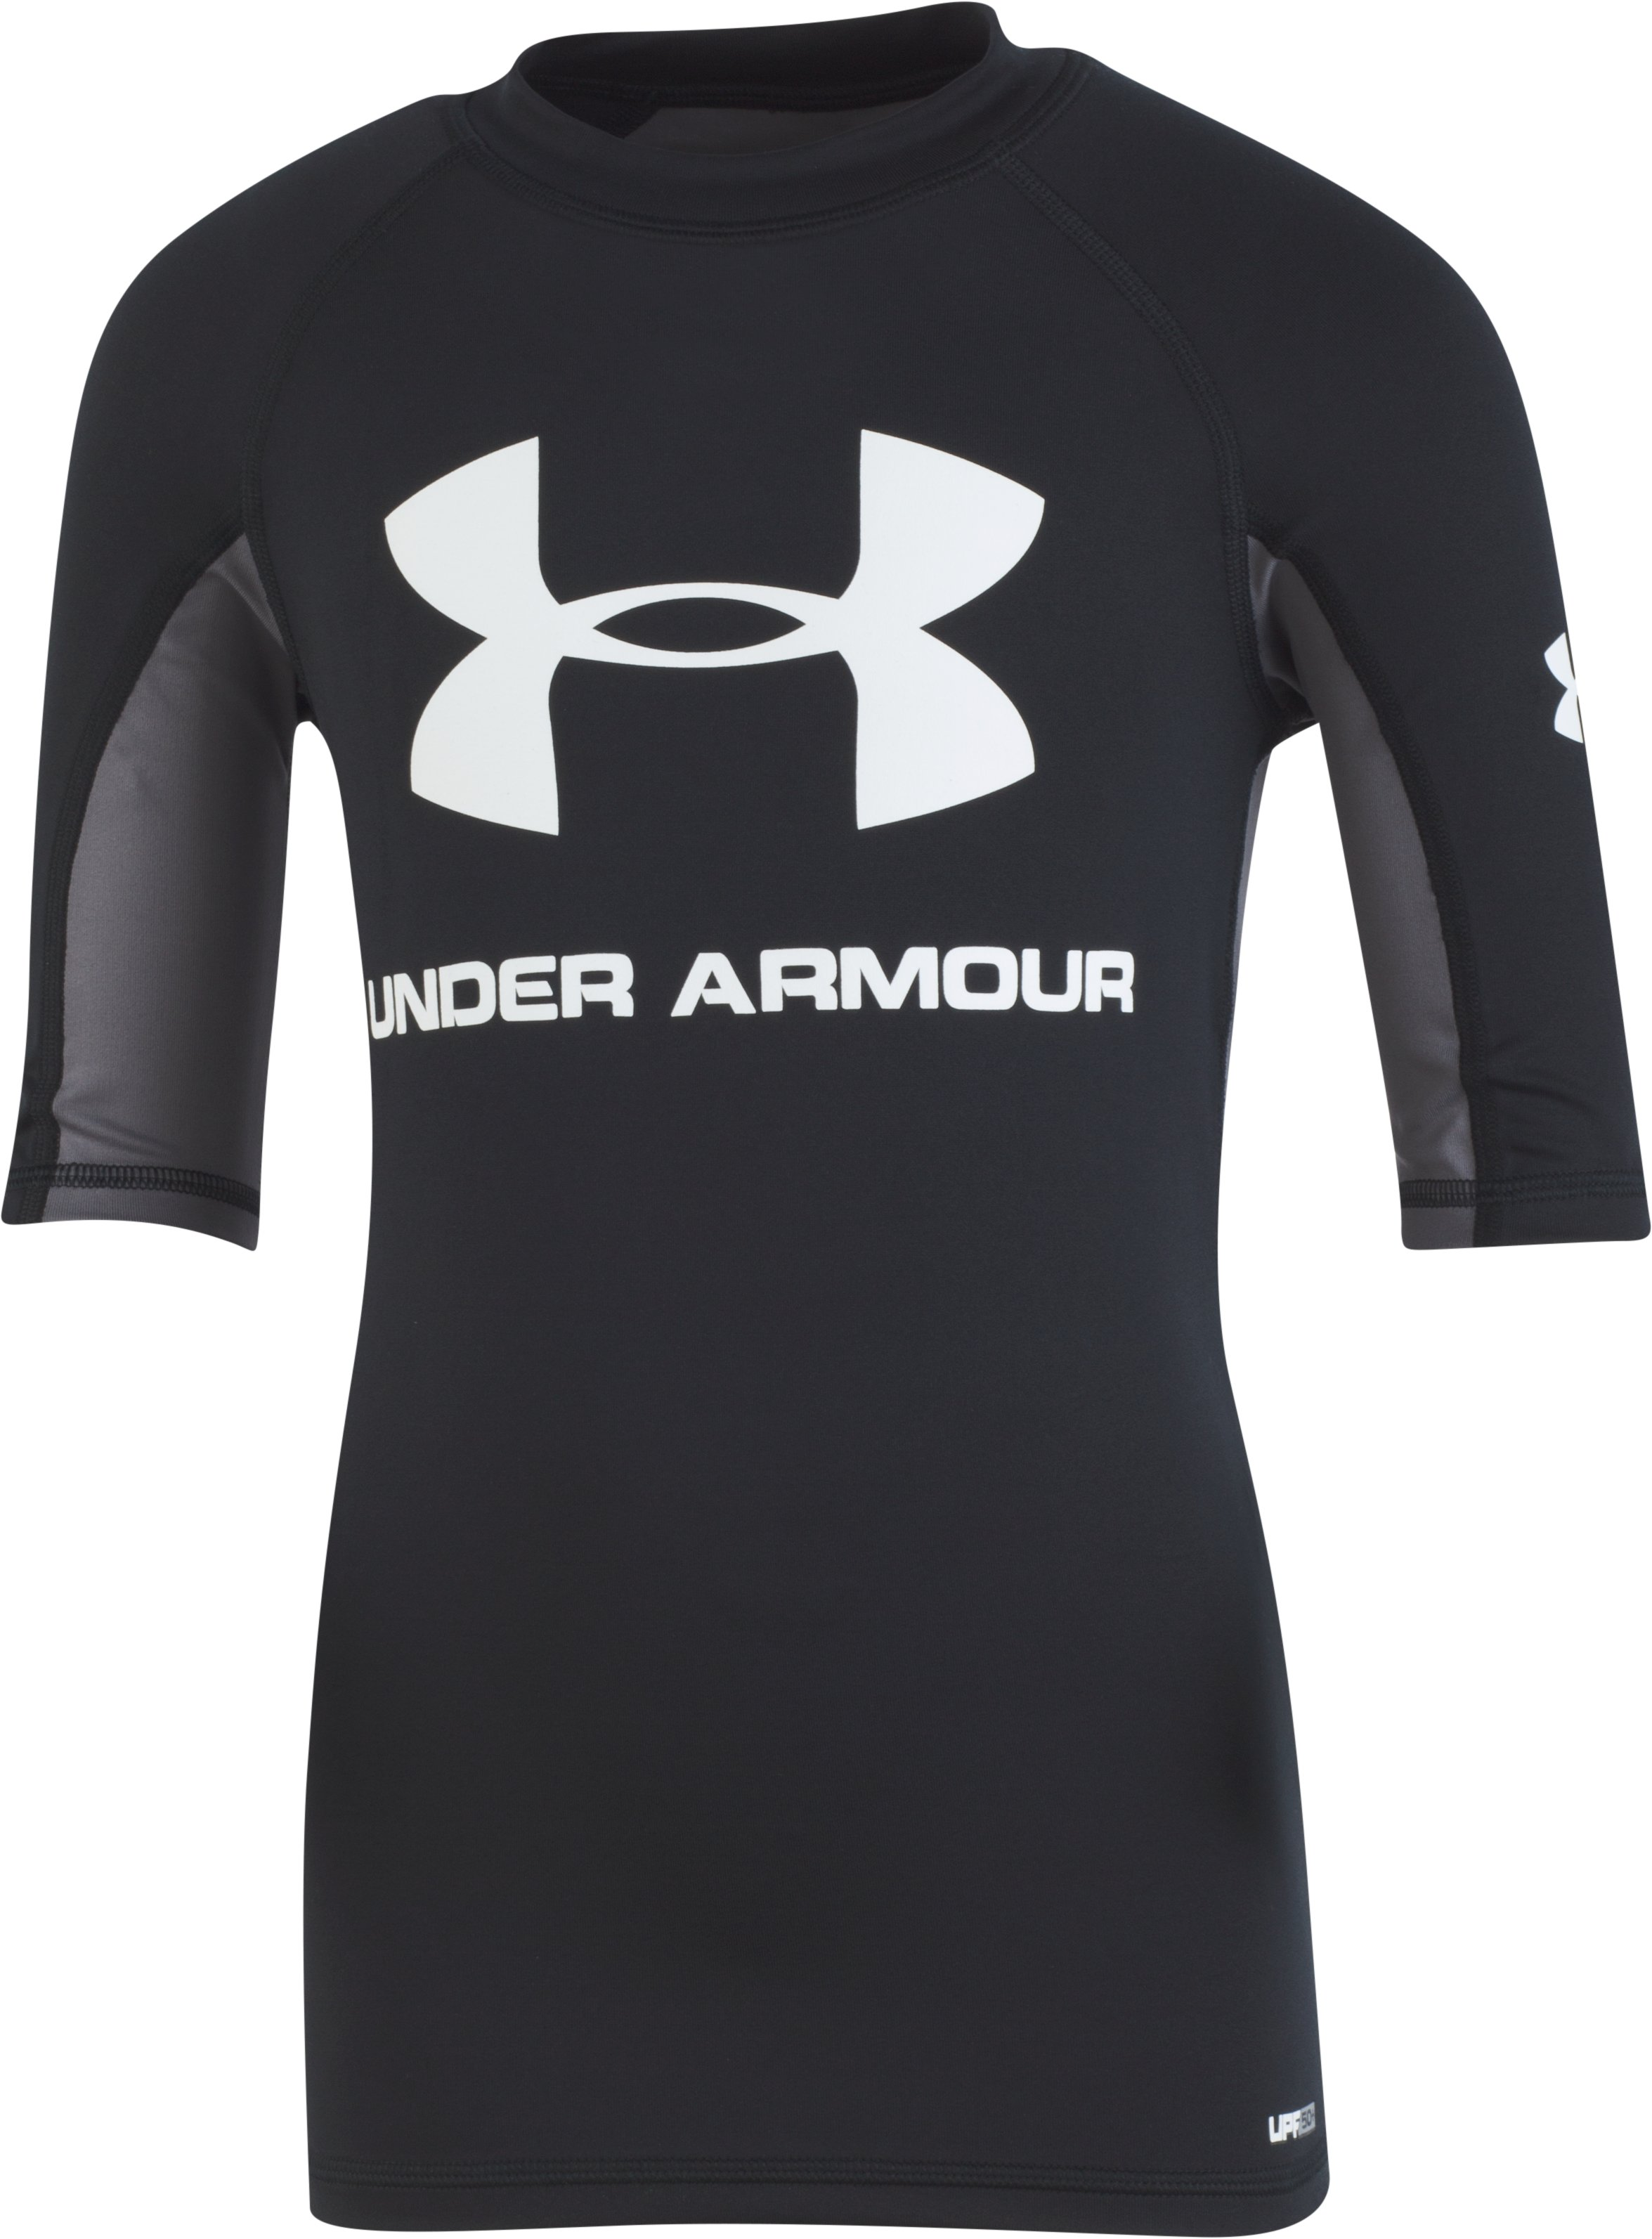 Boys' UA Compression Short Sleeve Rashguard Shirt 2 Colors $28.00